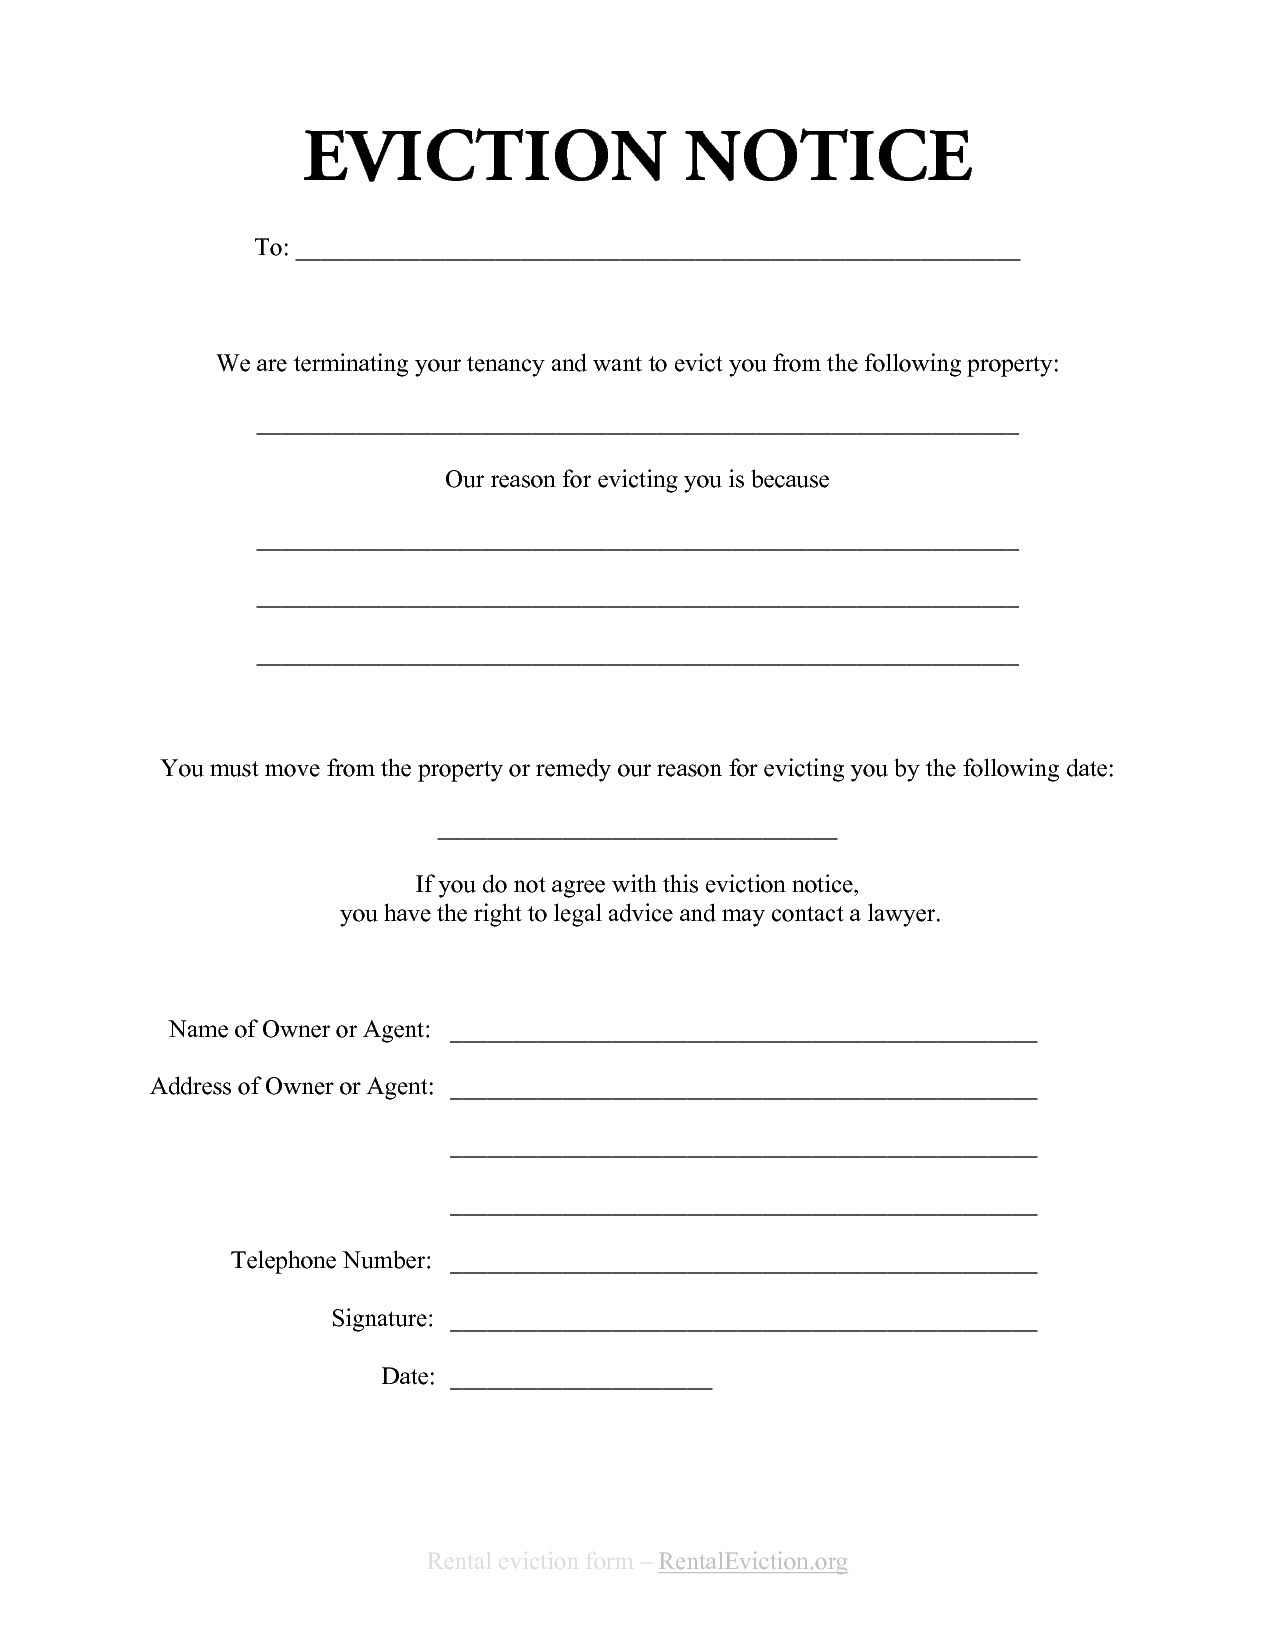 Free Print Out Eviction Notices | Free Rental Eviction Notice | Rent - Free Printable Eviction Notice